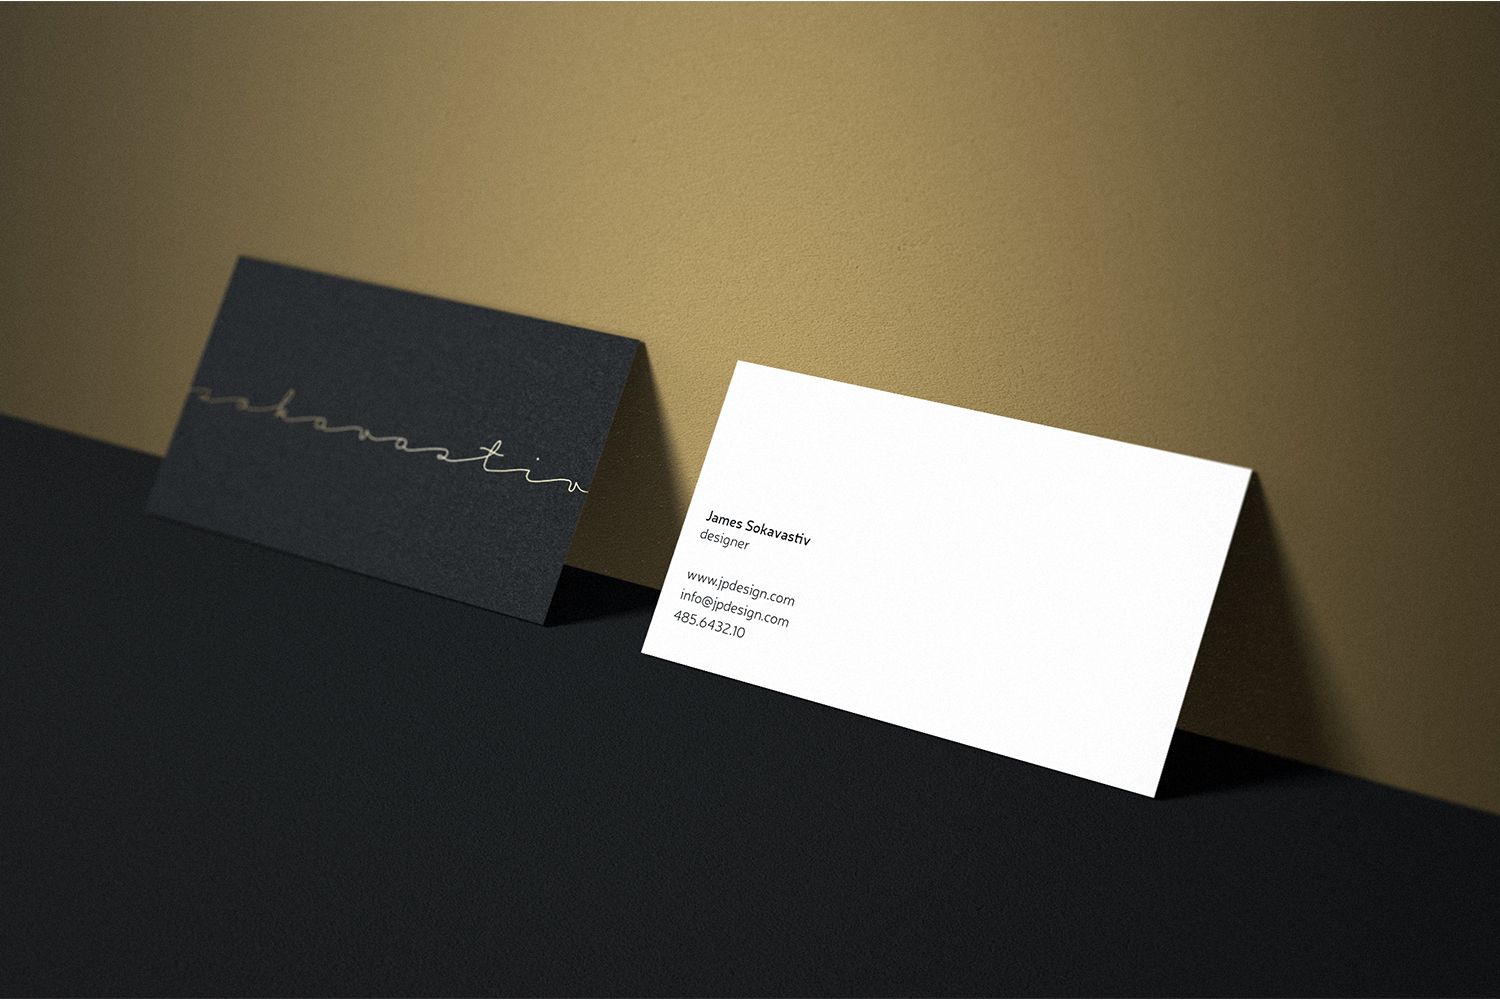 Gold business card bc098 by coolediti design bundles gold business card bc098 example image 2 colourmoves